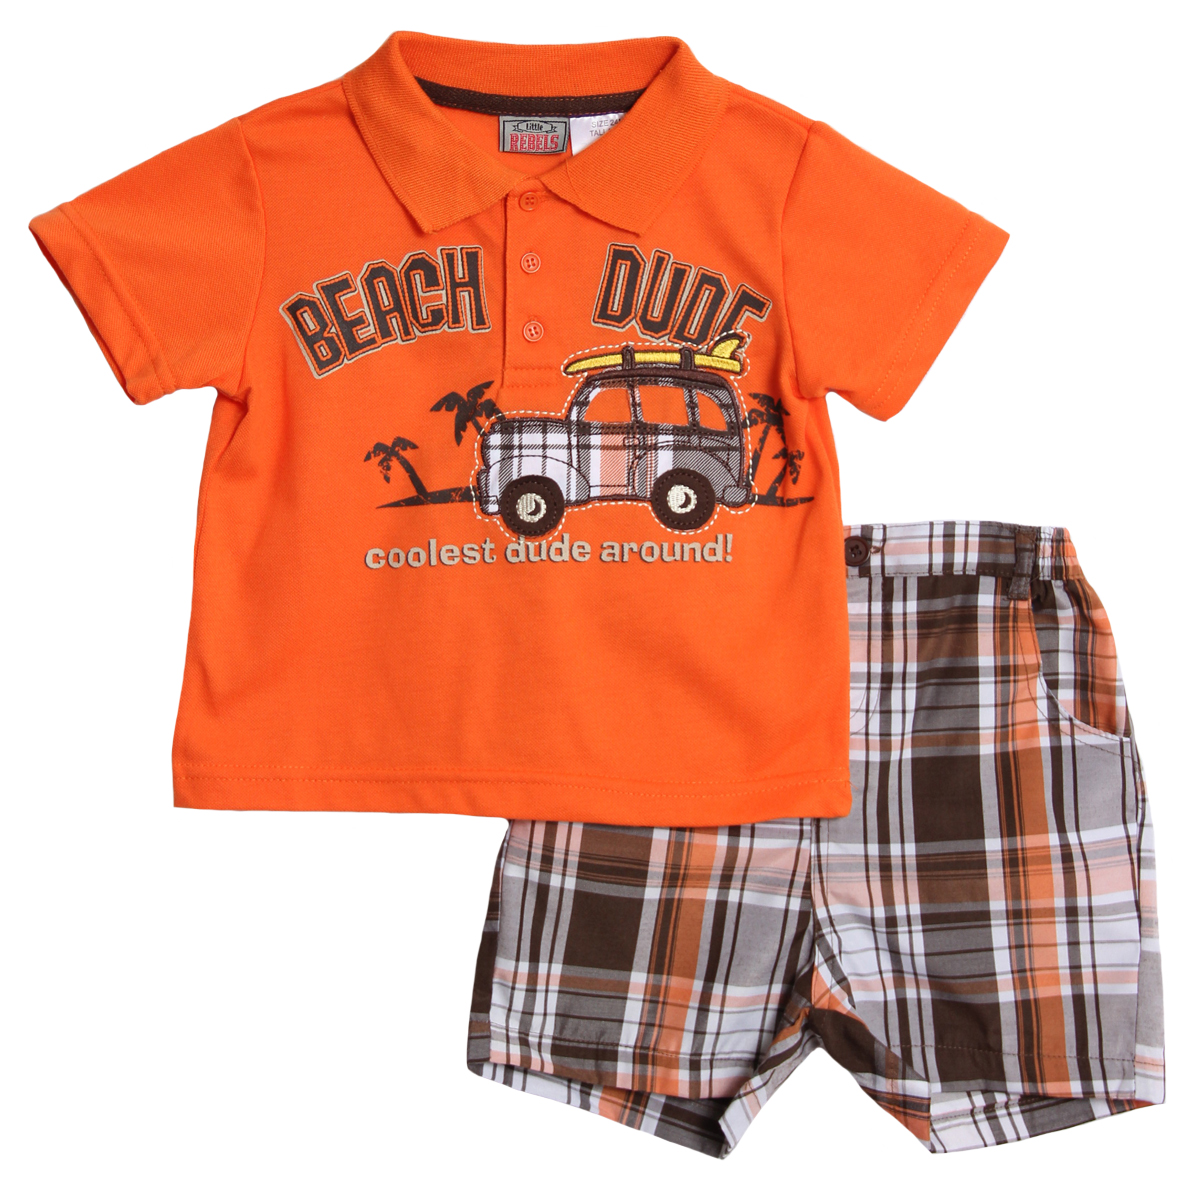 Little Rebels Infant Baby Boys 2 Piece Orange Navy Polo Shirt Plaid Shorts Set at Sears.com